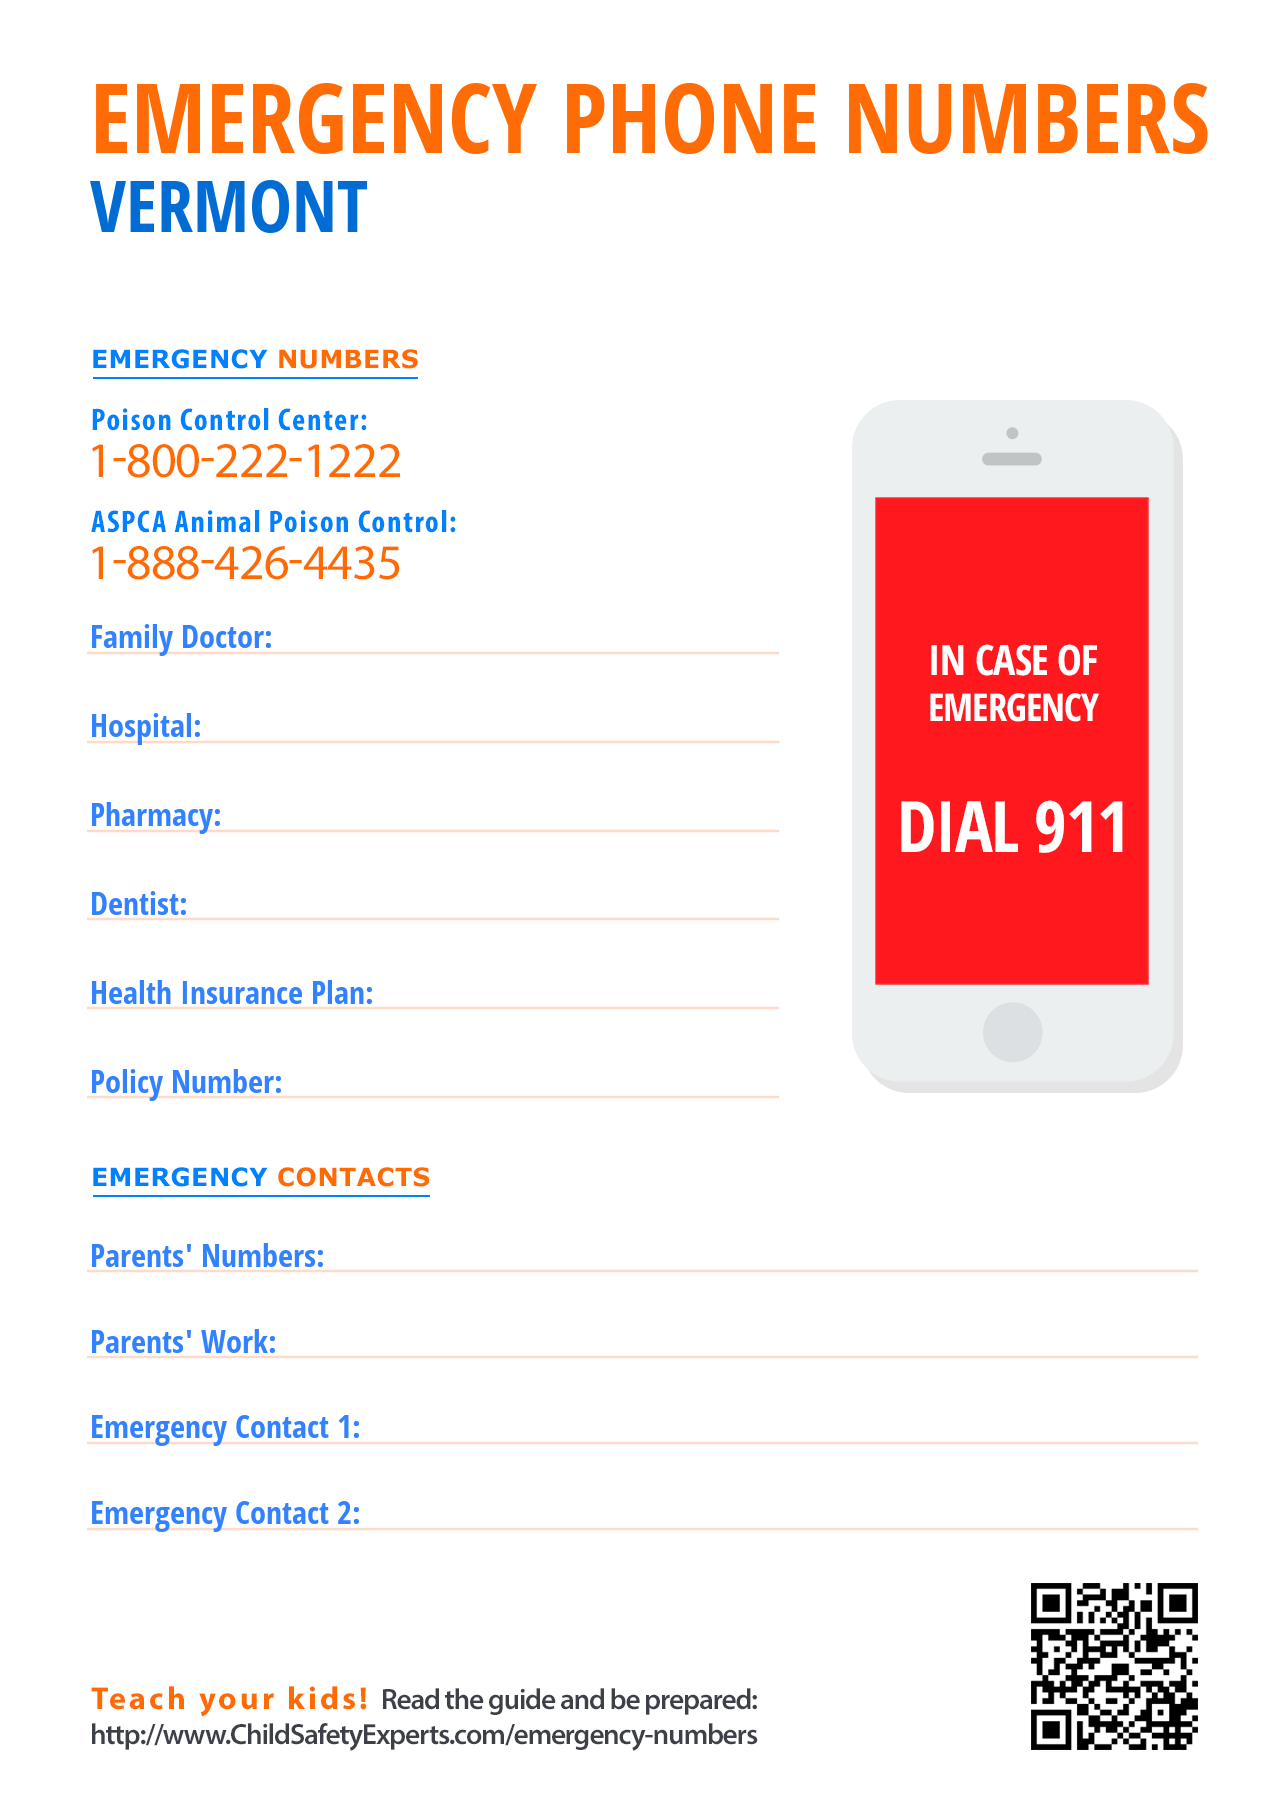 Important emergency phone numbers in Vermont